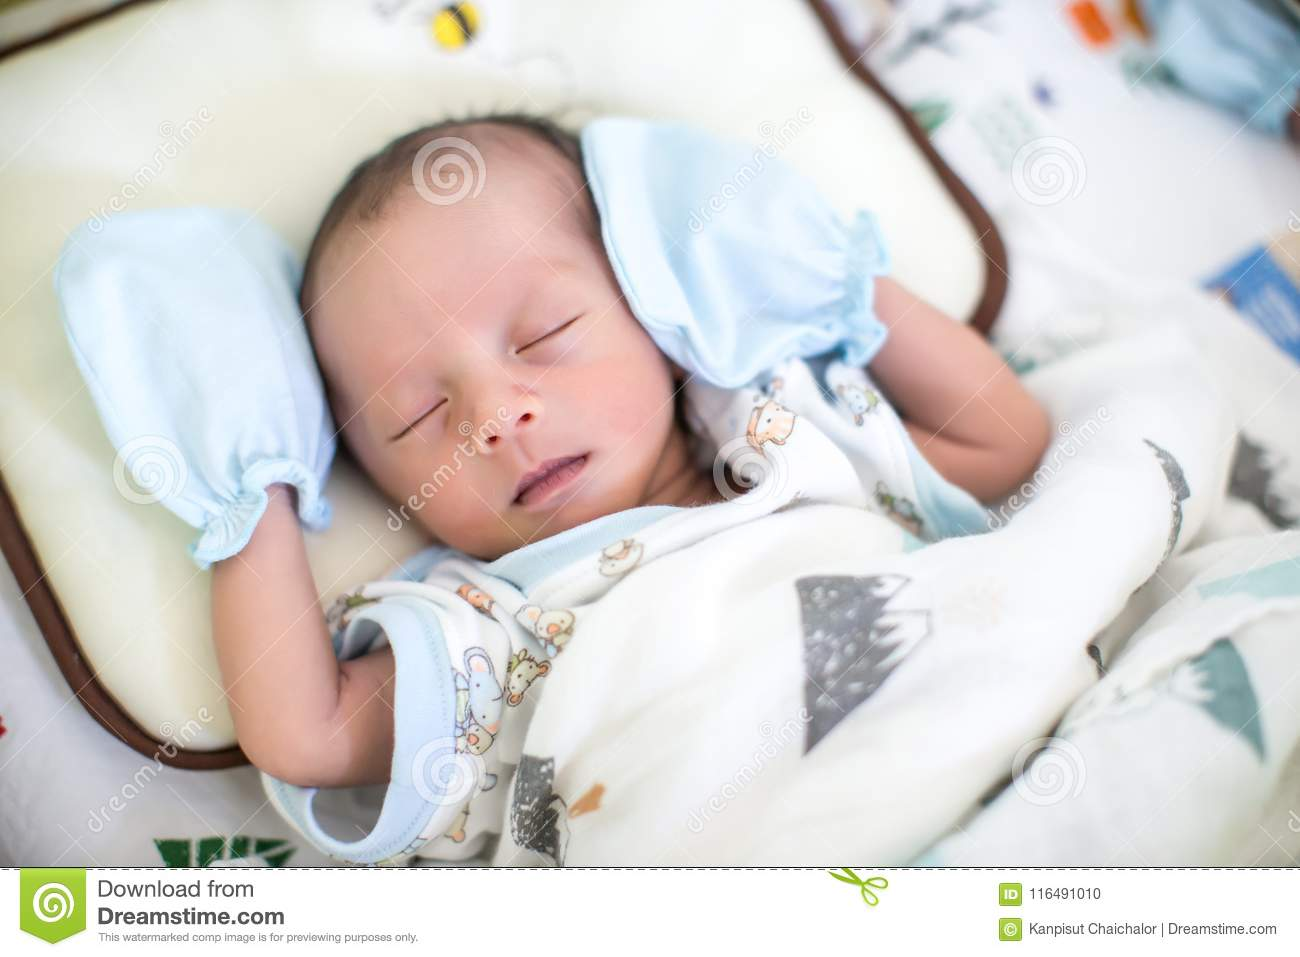 Baby Boy Sleeping On The Bed Growth Hormone And Sleep In Infant Cute Baby Boy Asleep Beauty And Fashion Of Baby Stock Photo Image Of Comfortable Closeup 116491010